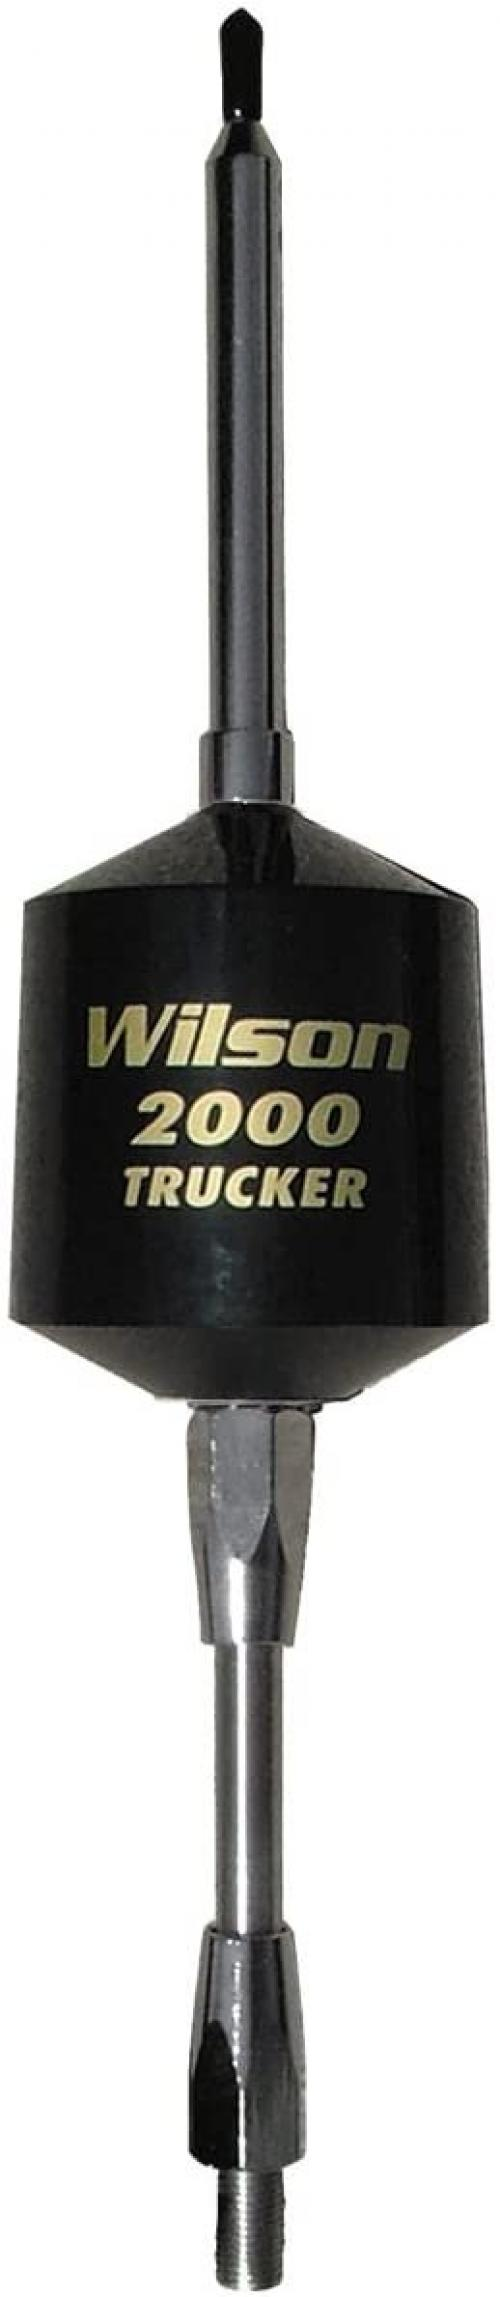 Wilson Trucker 2000 Antennas 5 Shaft - Black 305-492